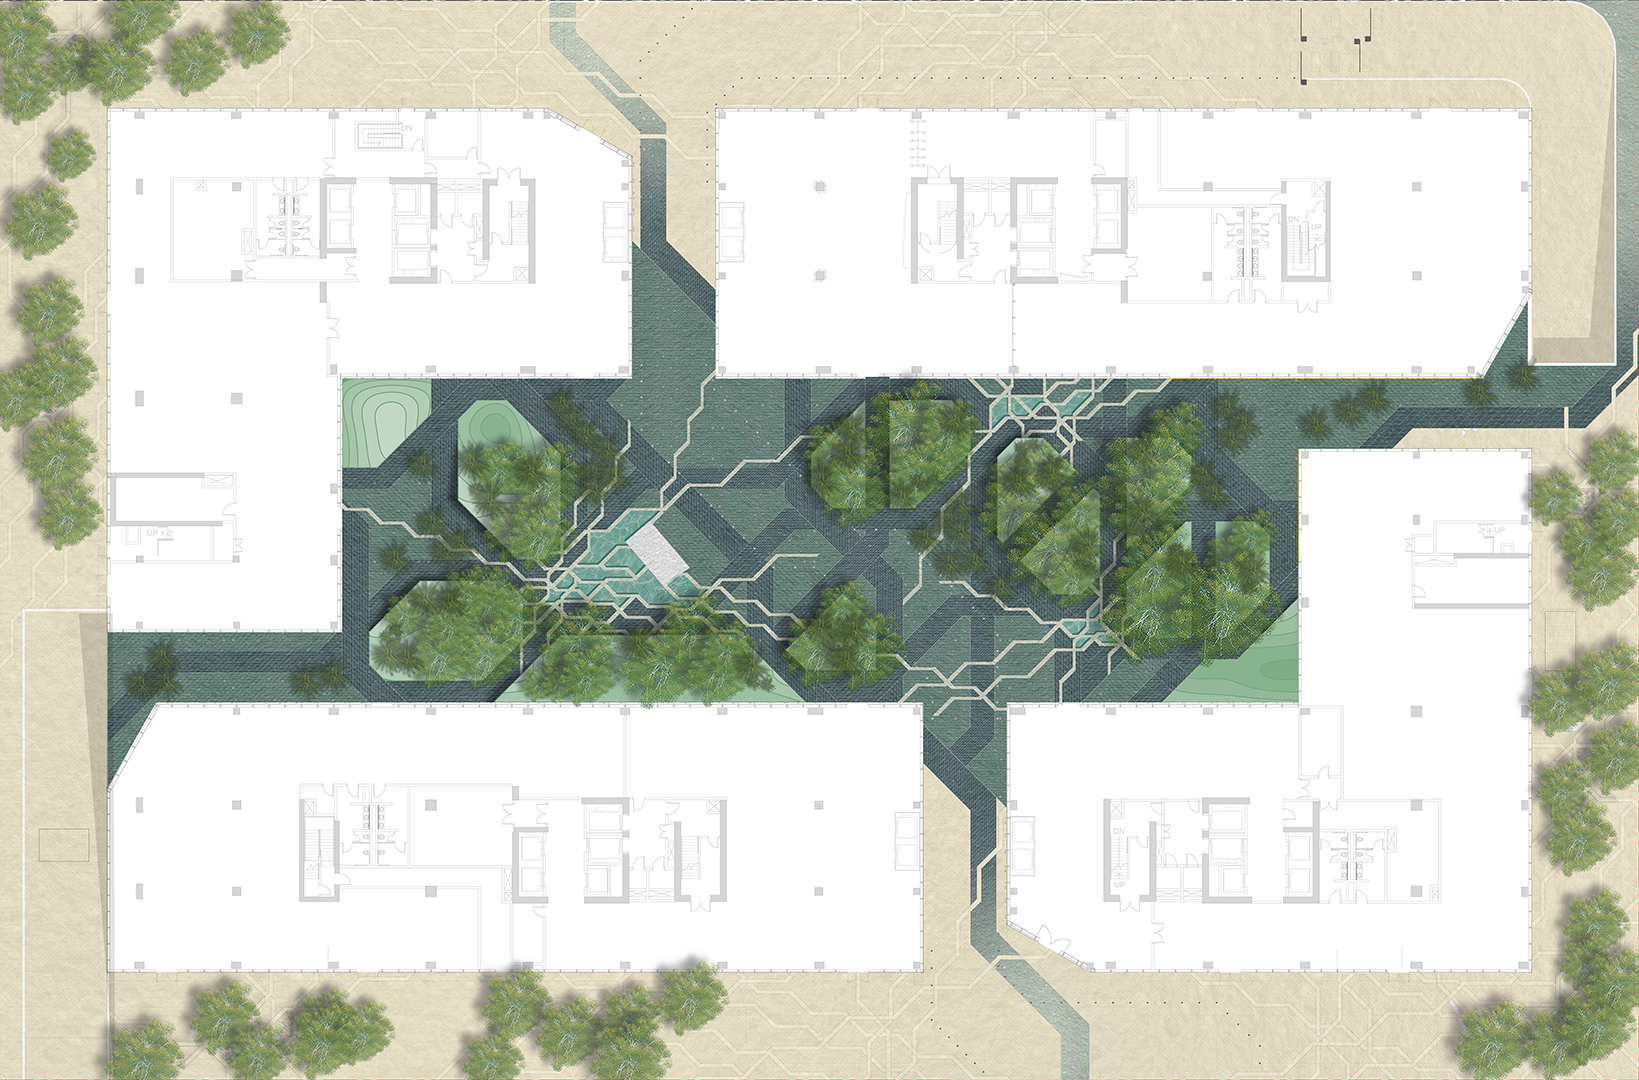 BA_Hermas_Rendered Plan_3.jpg